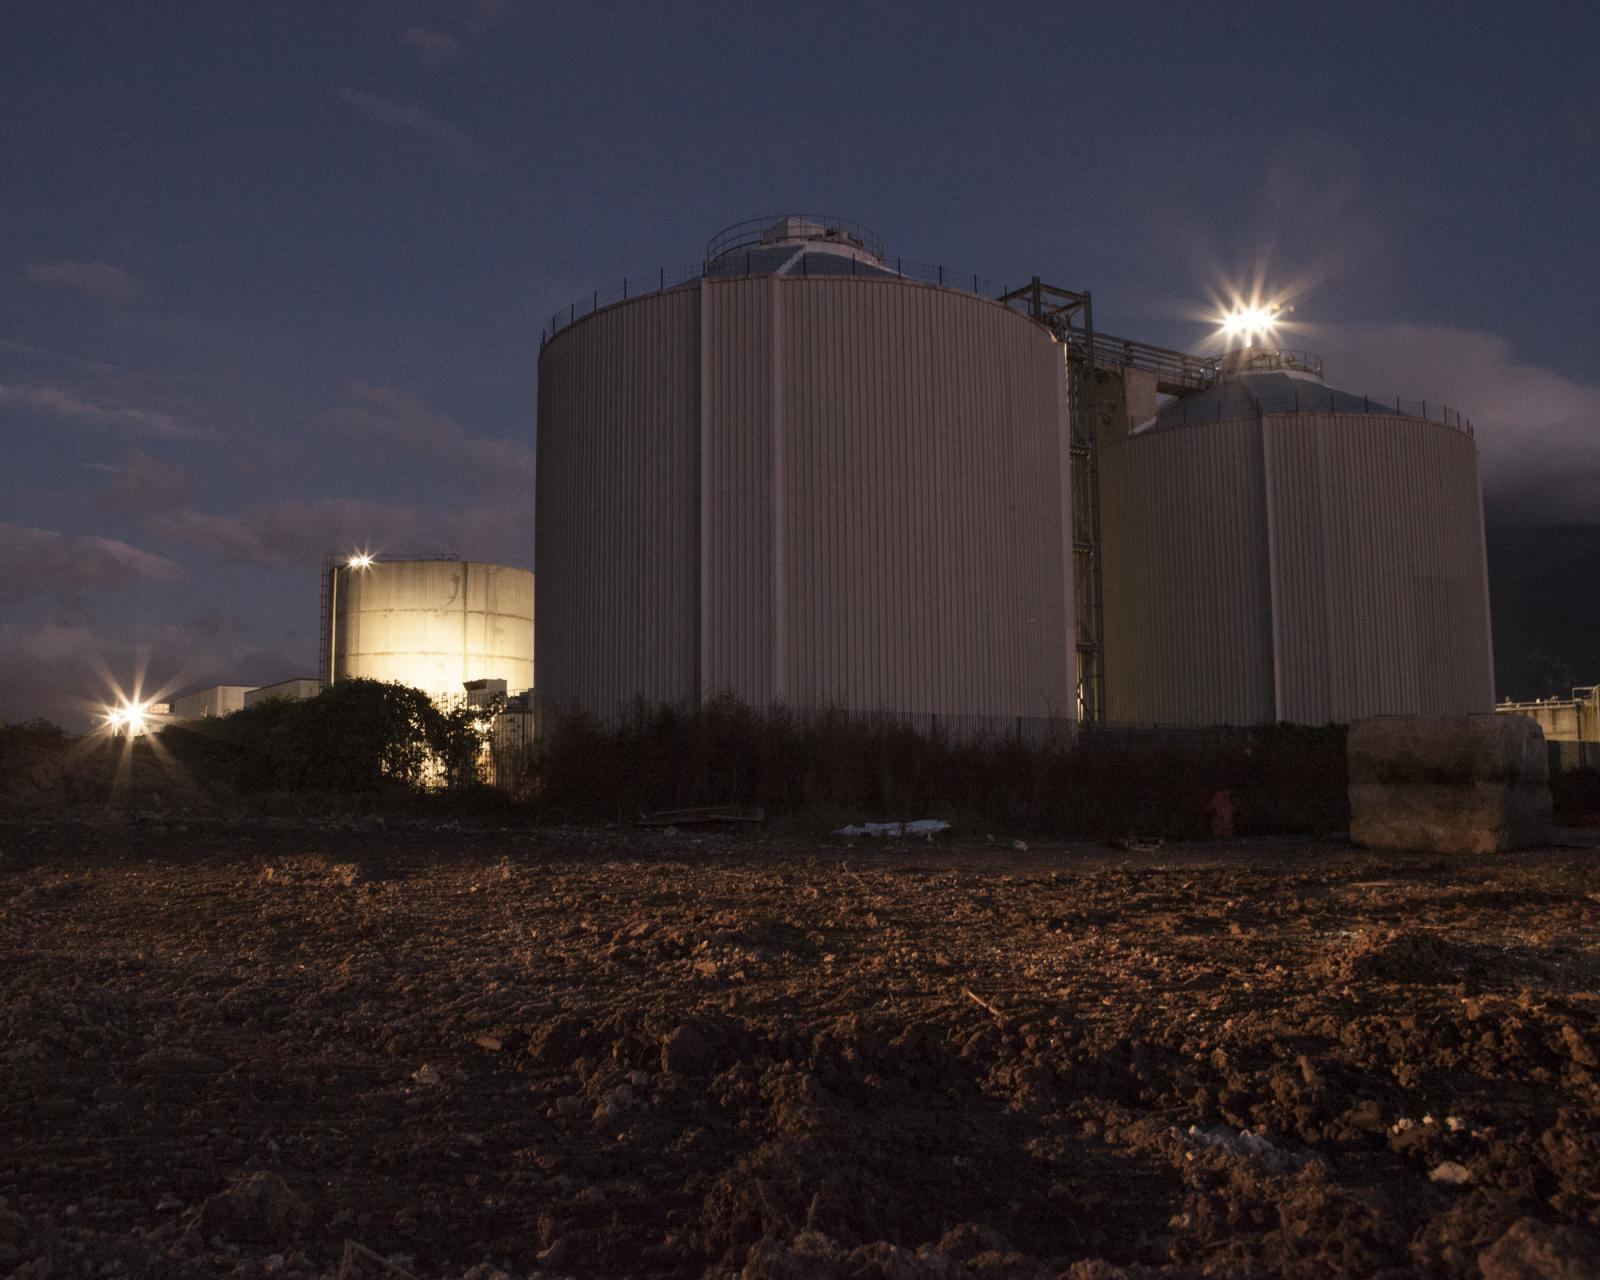 Scafati, November 2018. View of civil sewage treatment plant. This sewage treatment plant only works at a quarter of its capacity, due to the lack of infrastructure that should connect it to the sewerage networks of nearby cities.